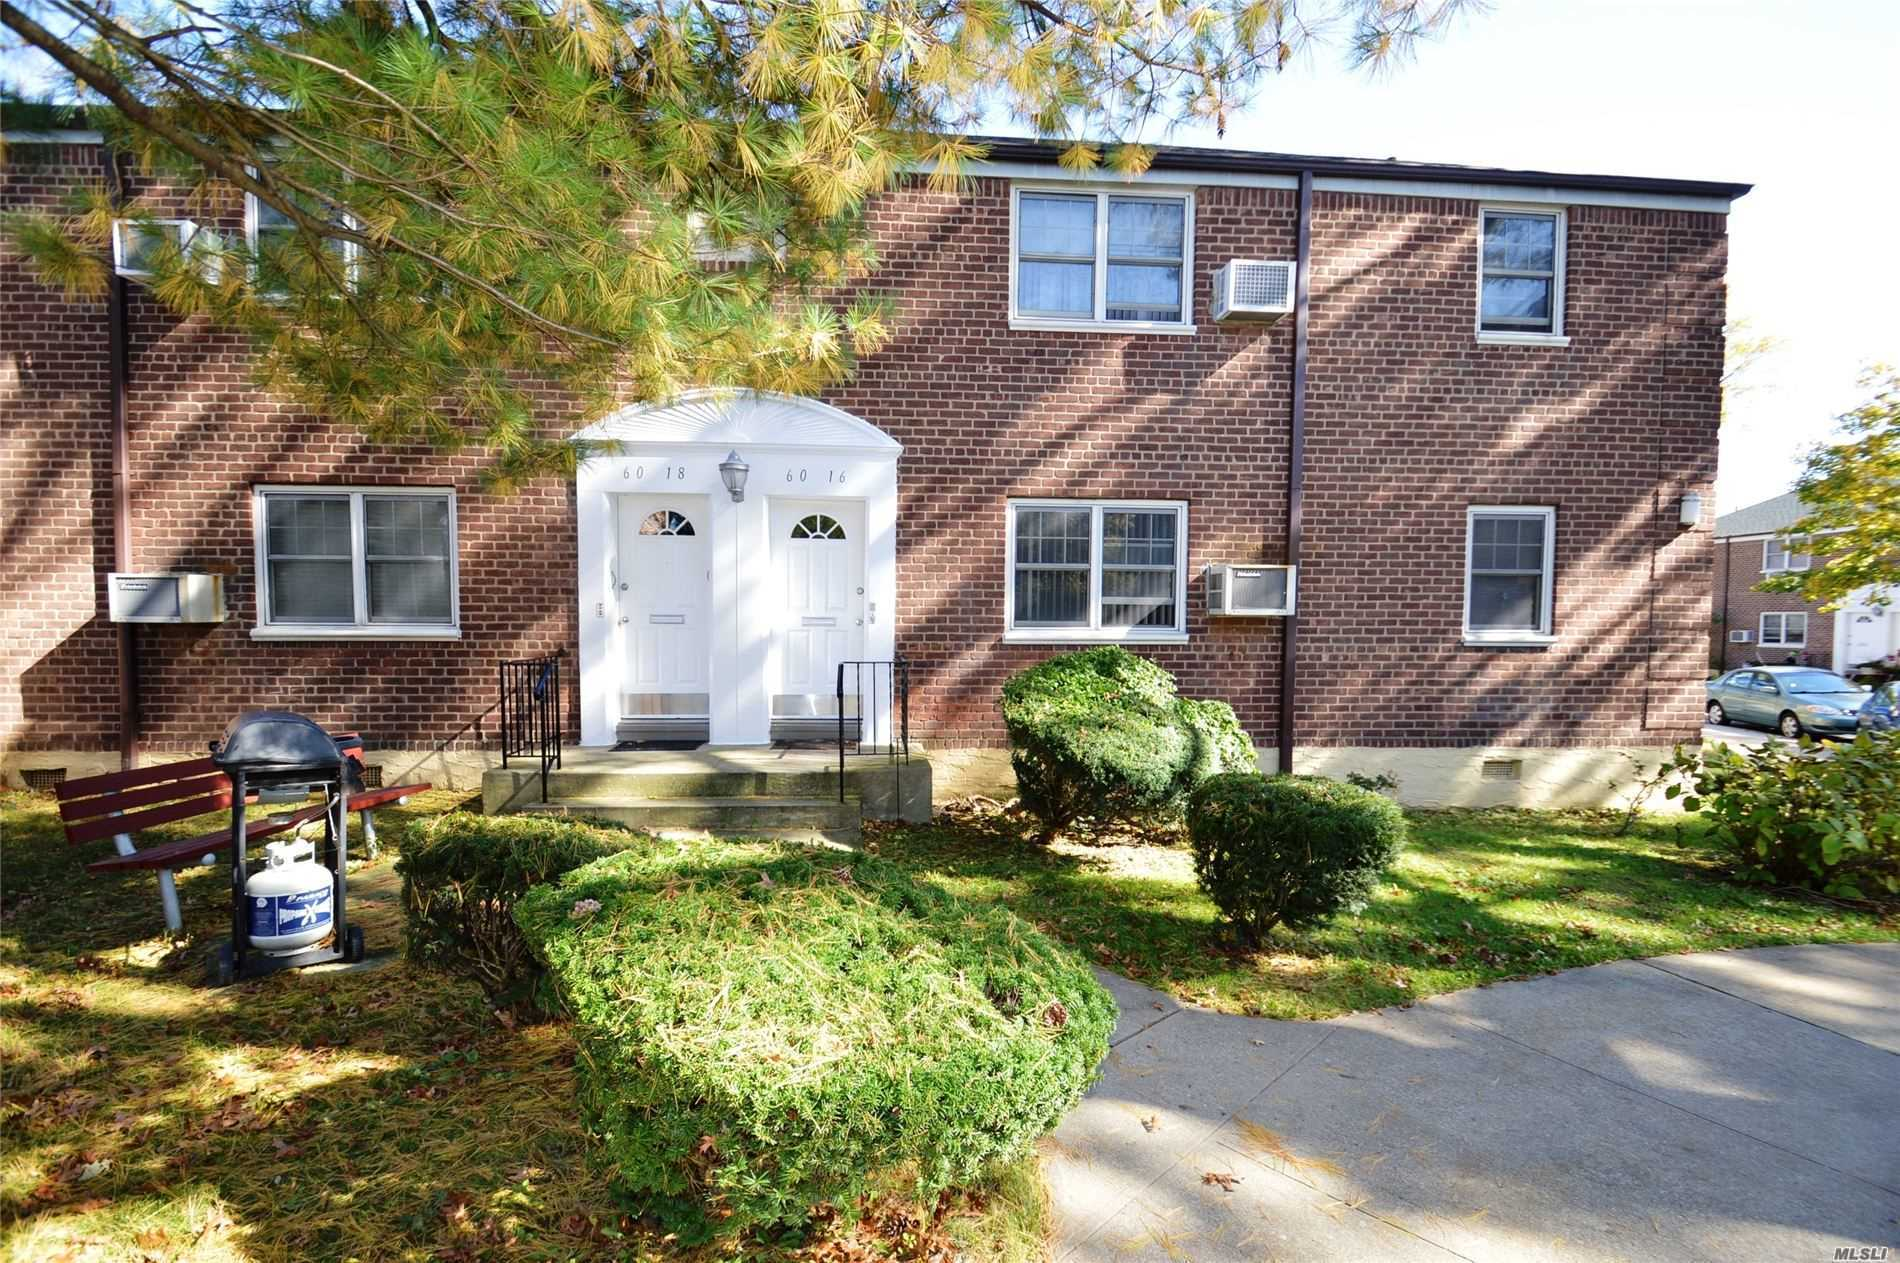 Location! Location! In Tree Lined Drive In Court. Triple Exposure Corner Unit. Freshly Painted & Kitchen with New Stove. Full Bath With New Vanity. Dining Room Can Be 3rd Bedroom. 2 Stickers For Parking. No Flip Tax. SD #26. Maintenance Includes All Utilities.